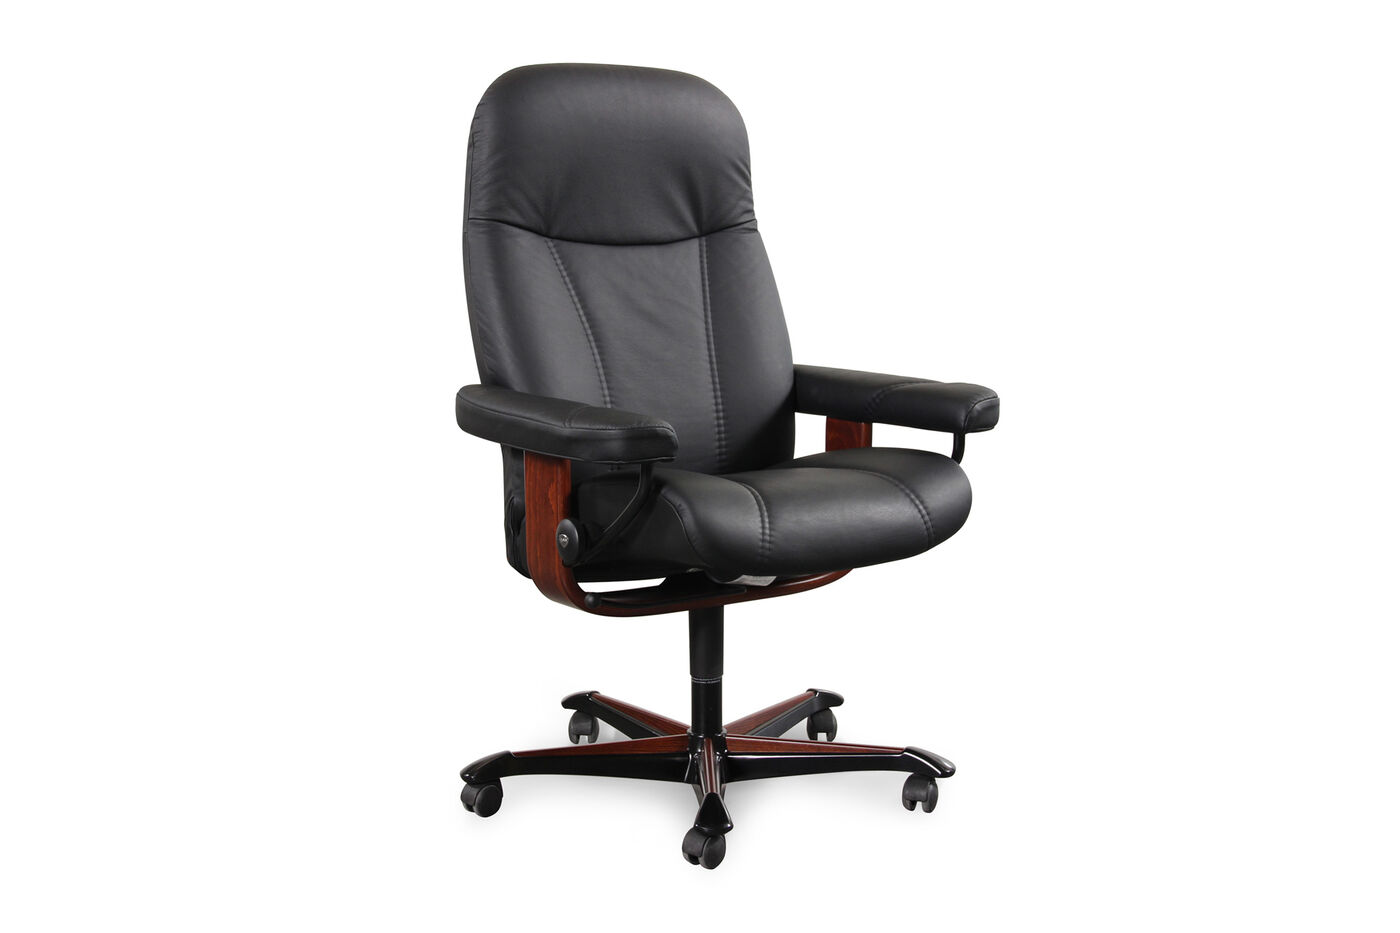 Leather Ergonomic Swivel Office Chair in Black | Mathis Brothers ...